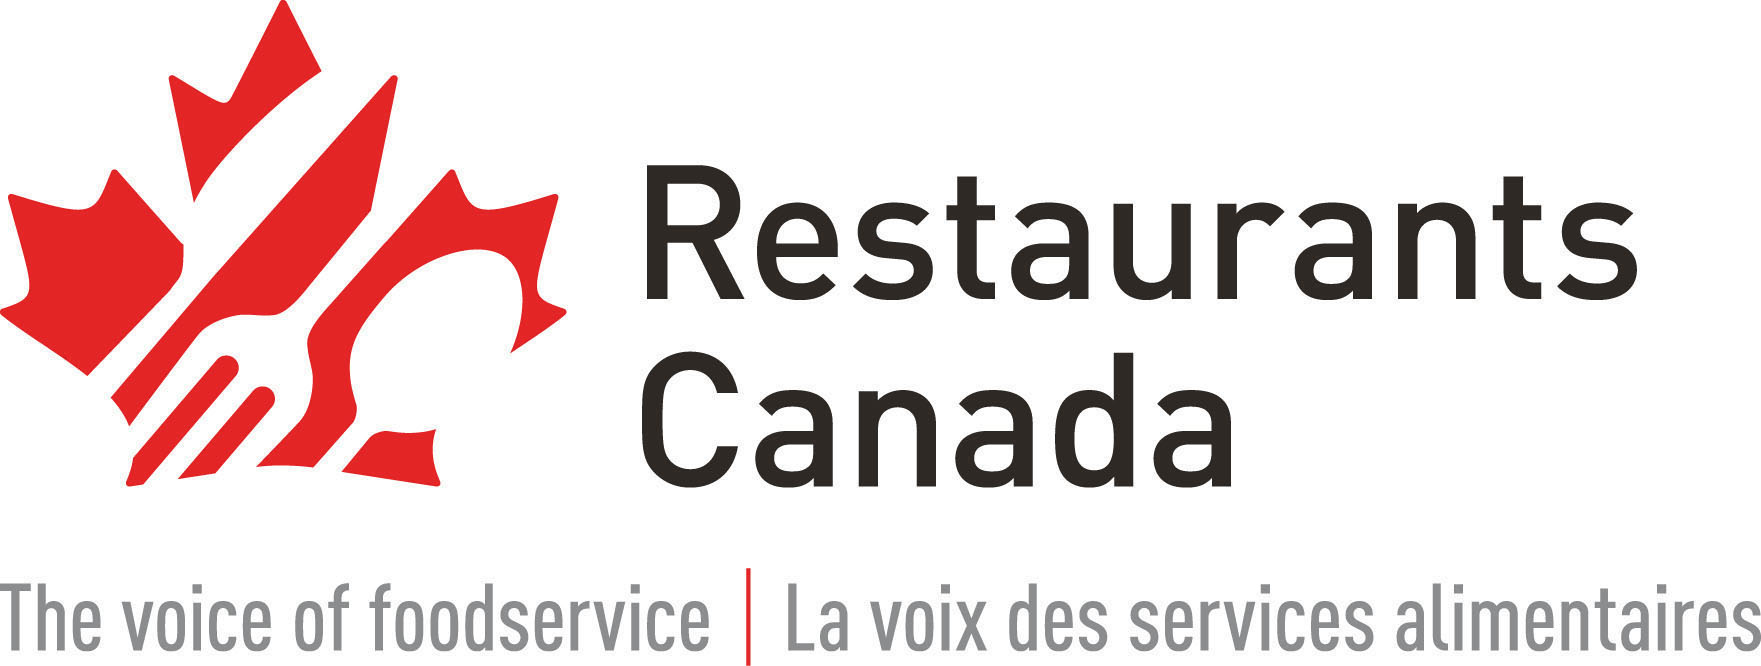 Restaurants Canada calls on New Brunswick's next government to support the foodservice sector's recovery